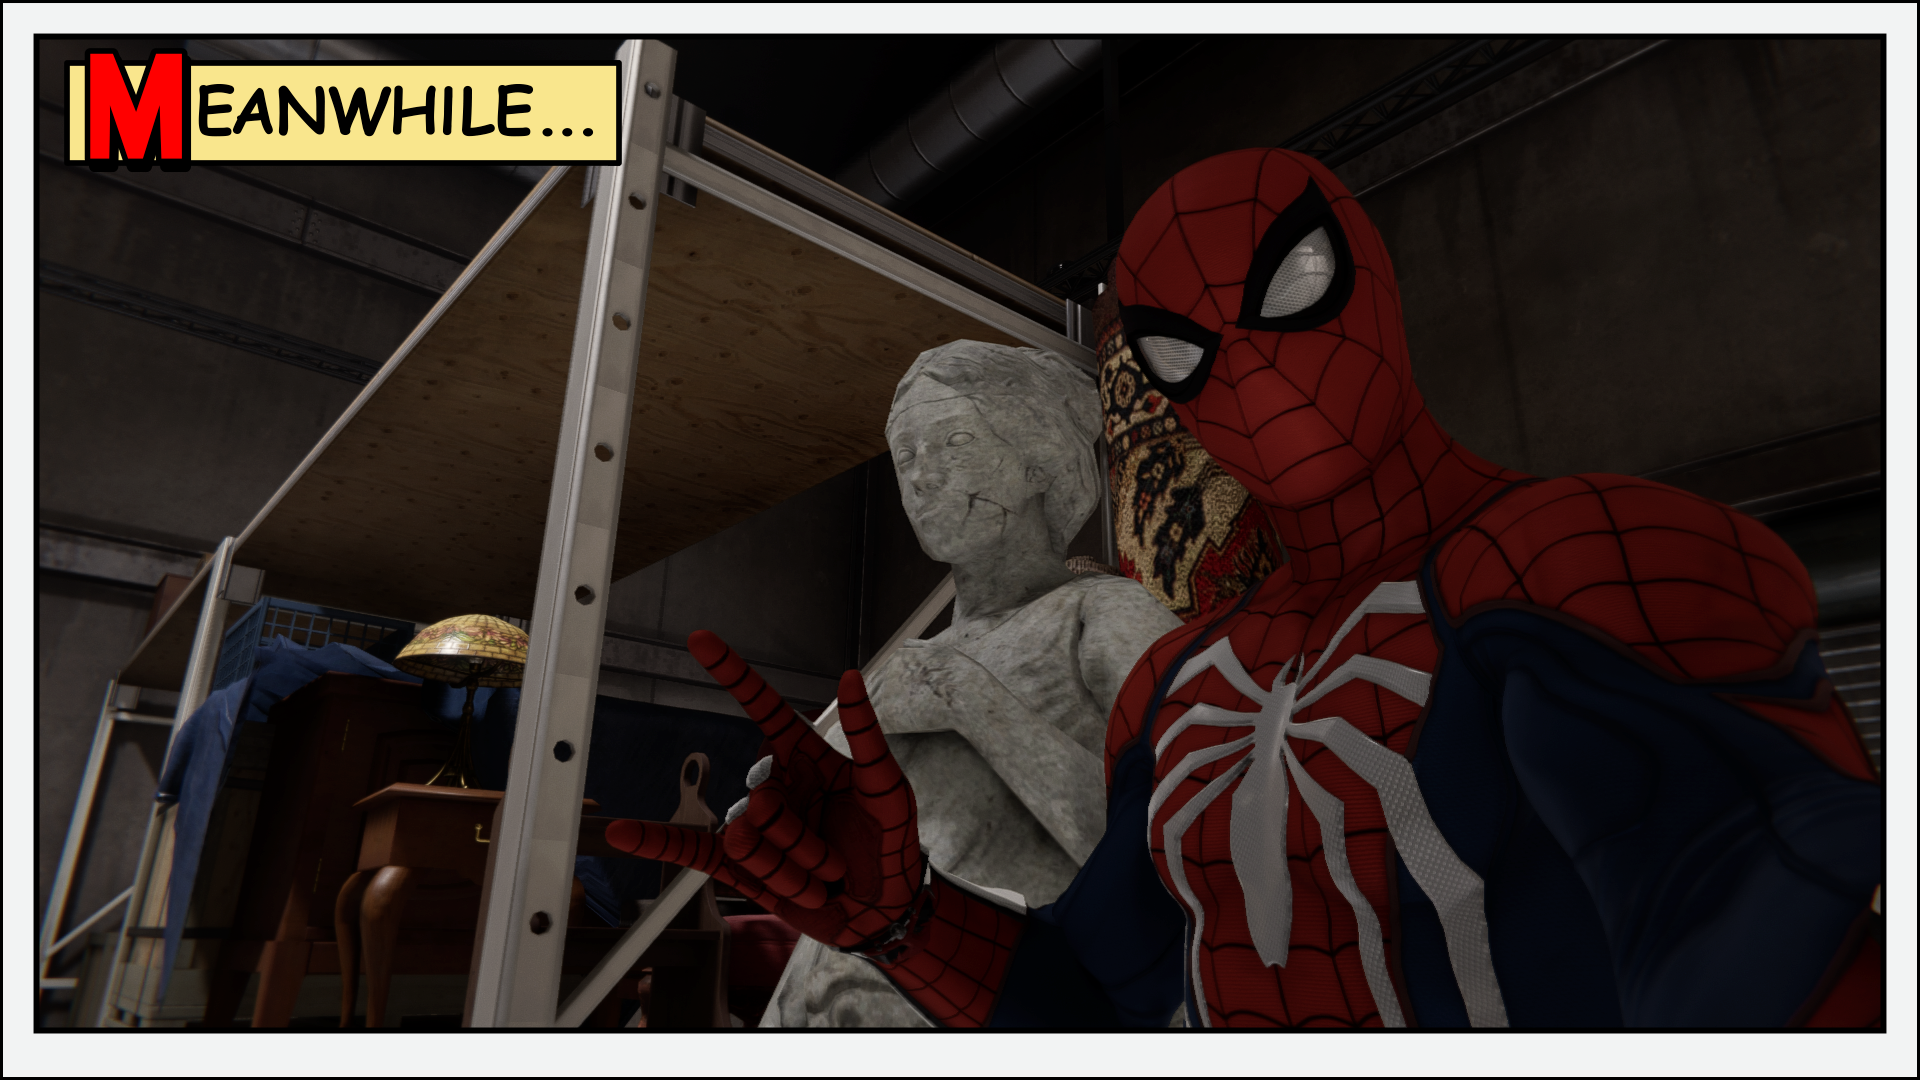 More photo mode goofing.